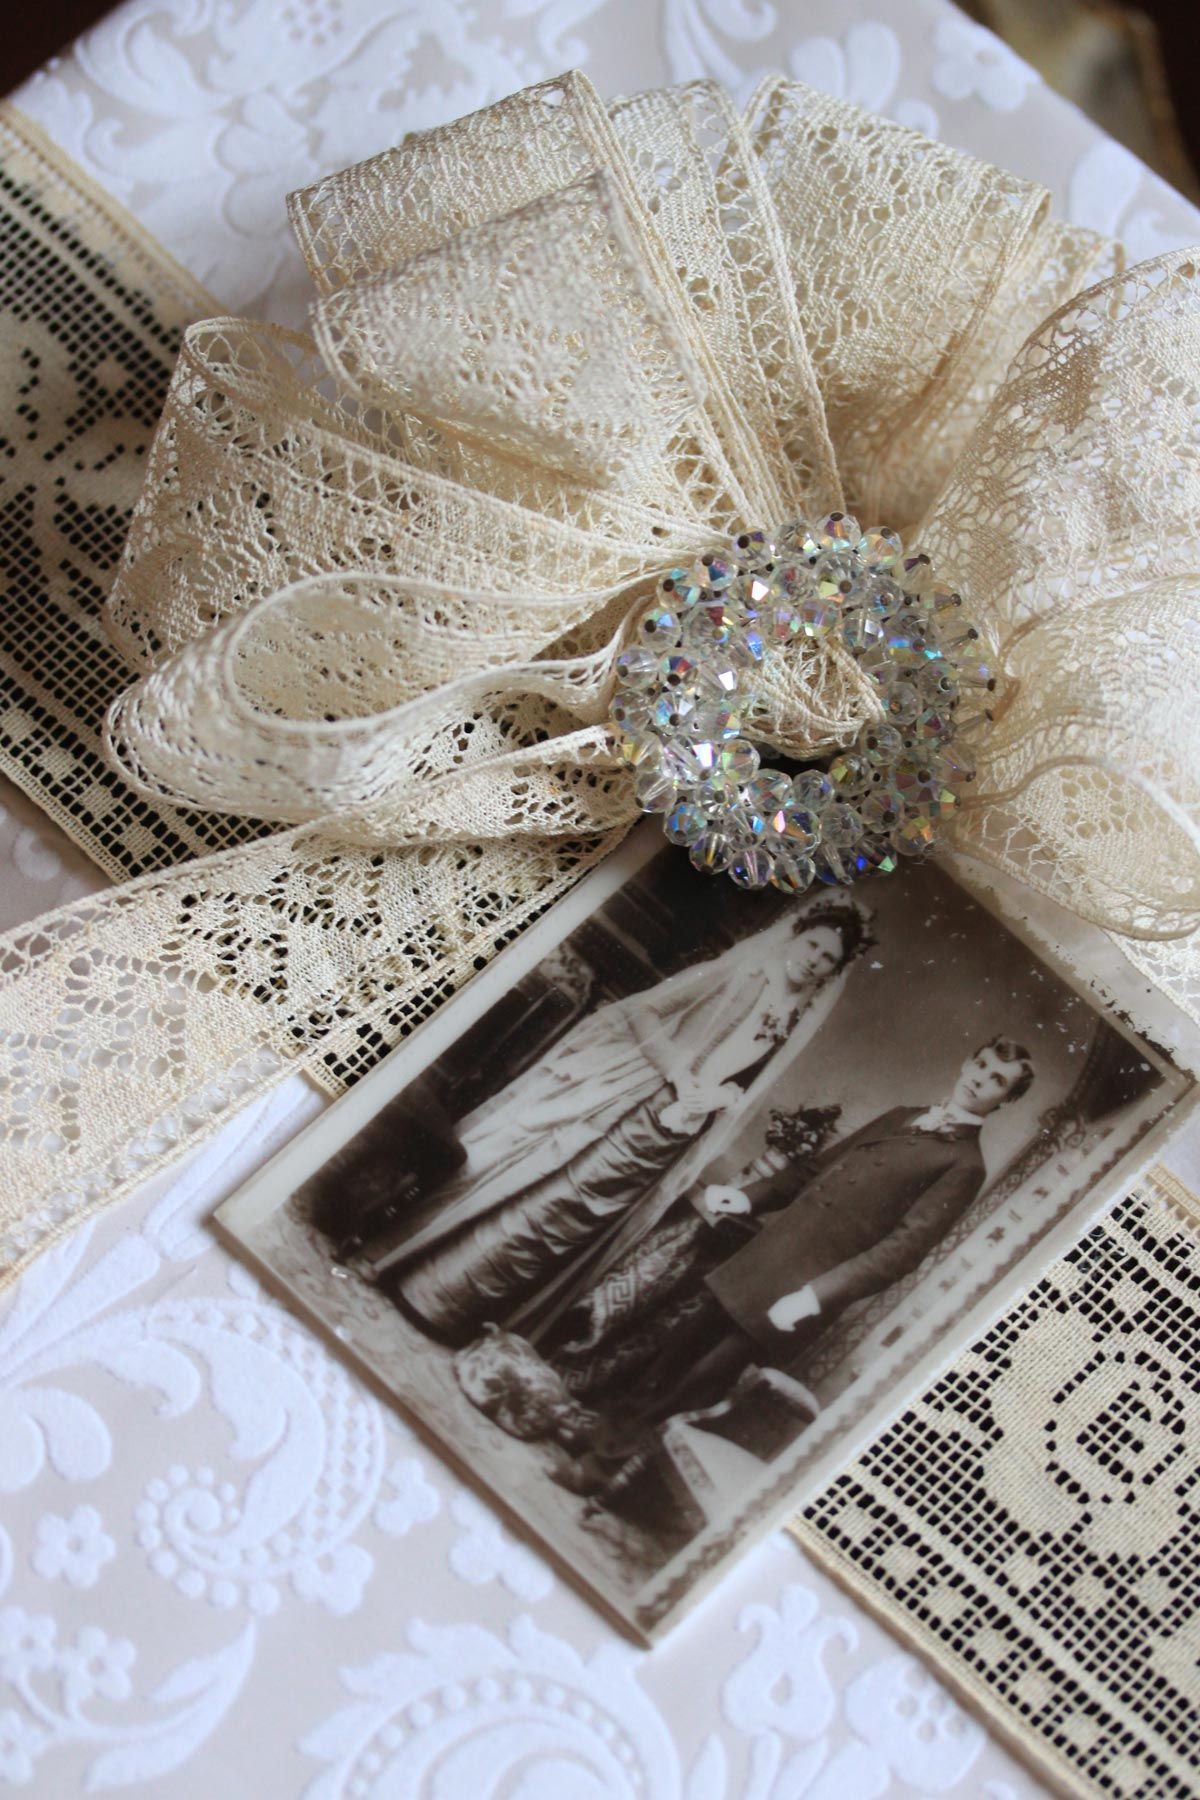 How To Wrap Wedding Gifts: Wedding Gift Wrap (closer!) Made From Photo Filing Box